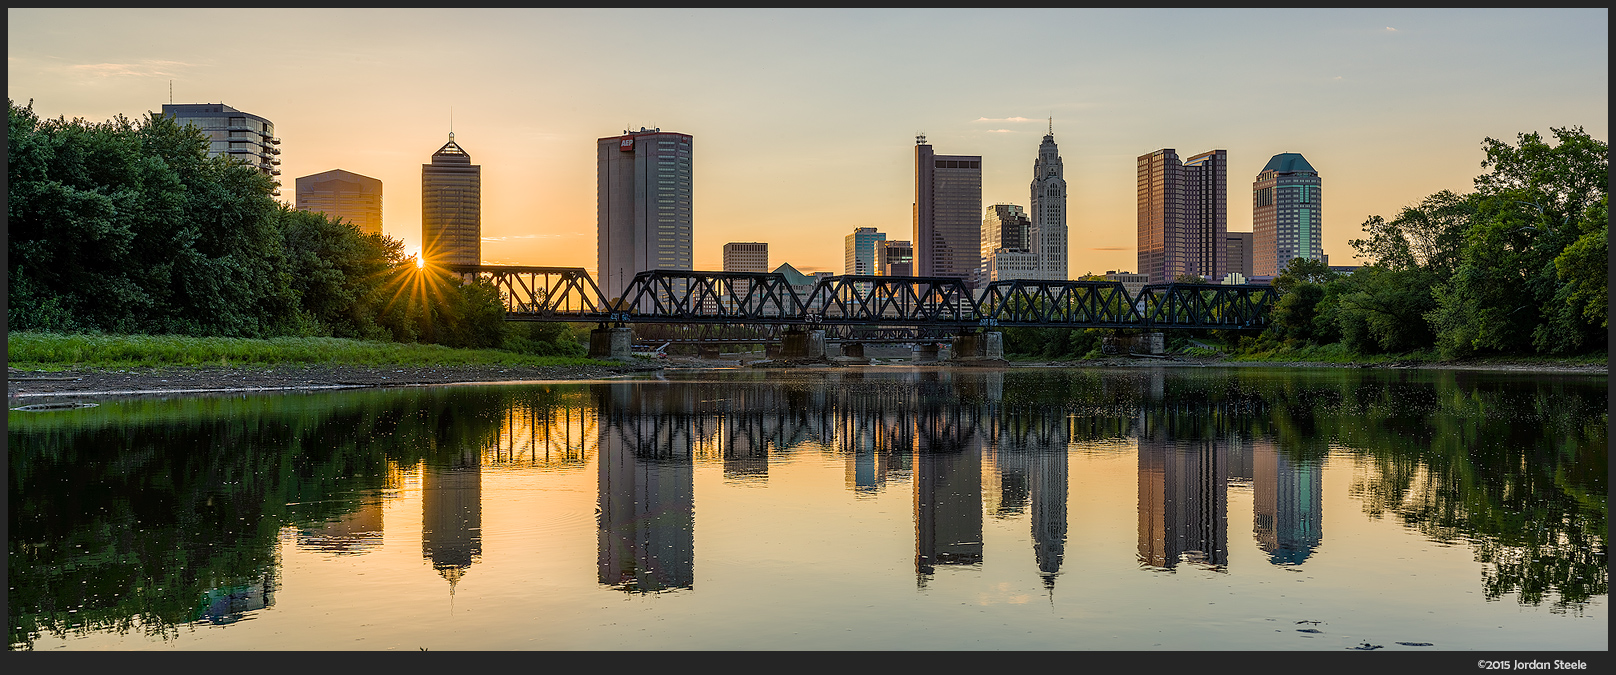 Columbus at Sunrise - Sony A7 II with Zeiss Batis 85mm f/1.8 @ f/11 (5 shot panorama)